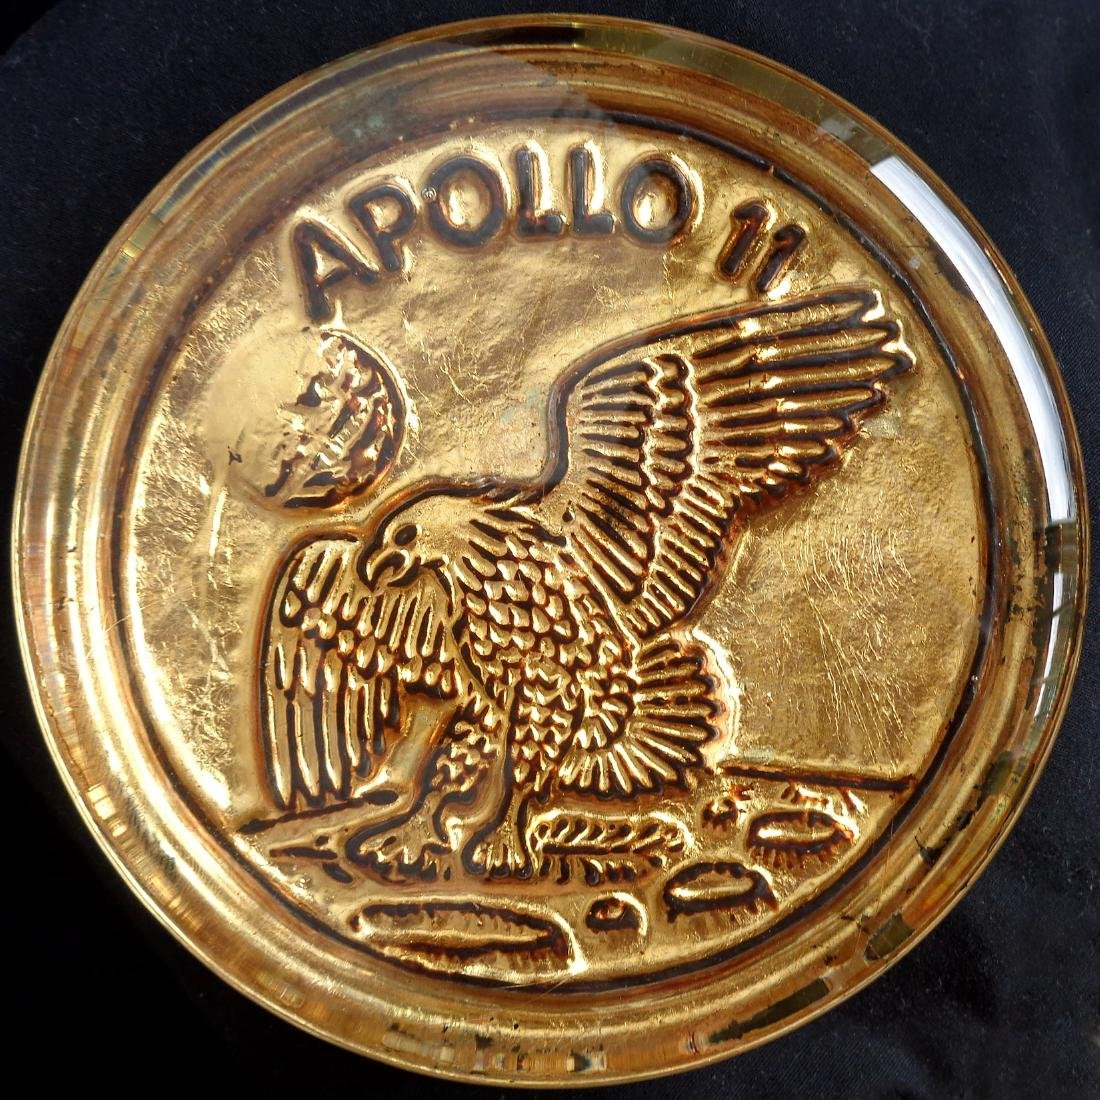 Venetian Gold Leaf Apollo 11 Glass Paperweight